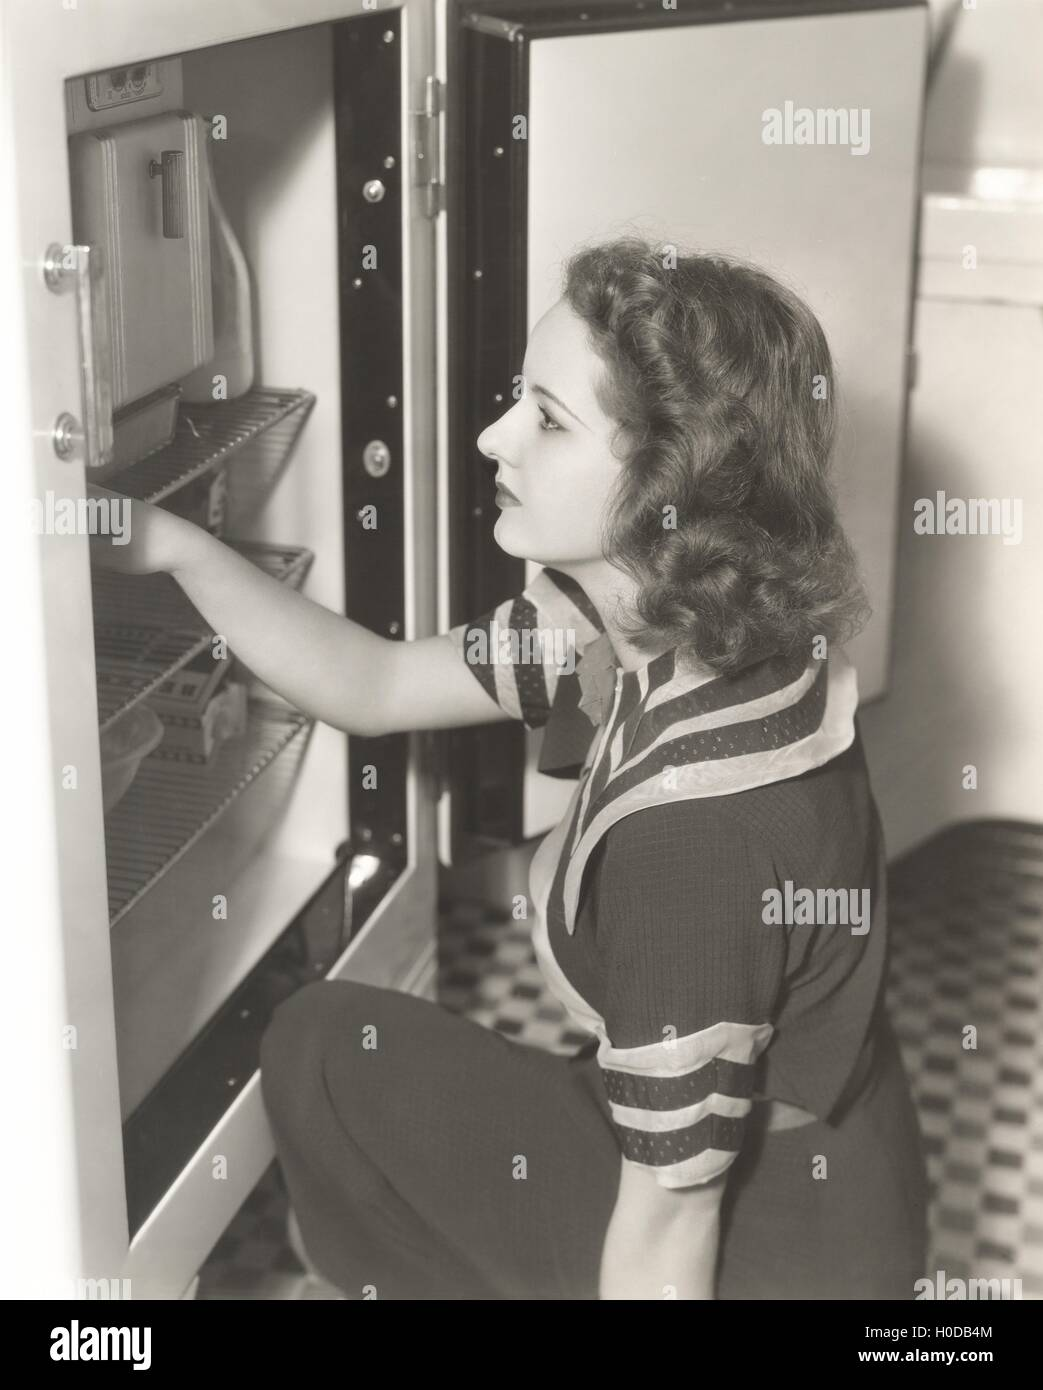 Side view of woman looking through refrigerator - Stock Image